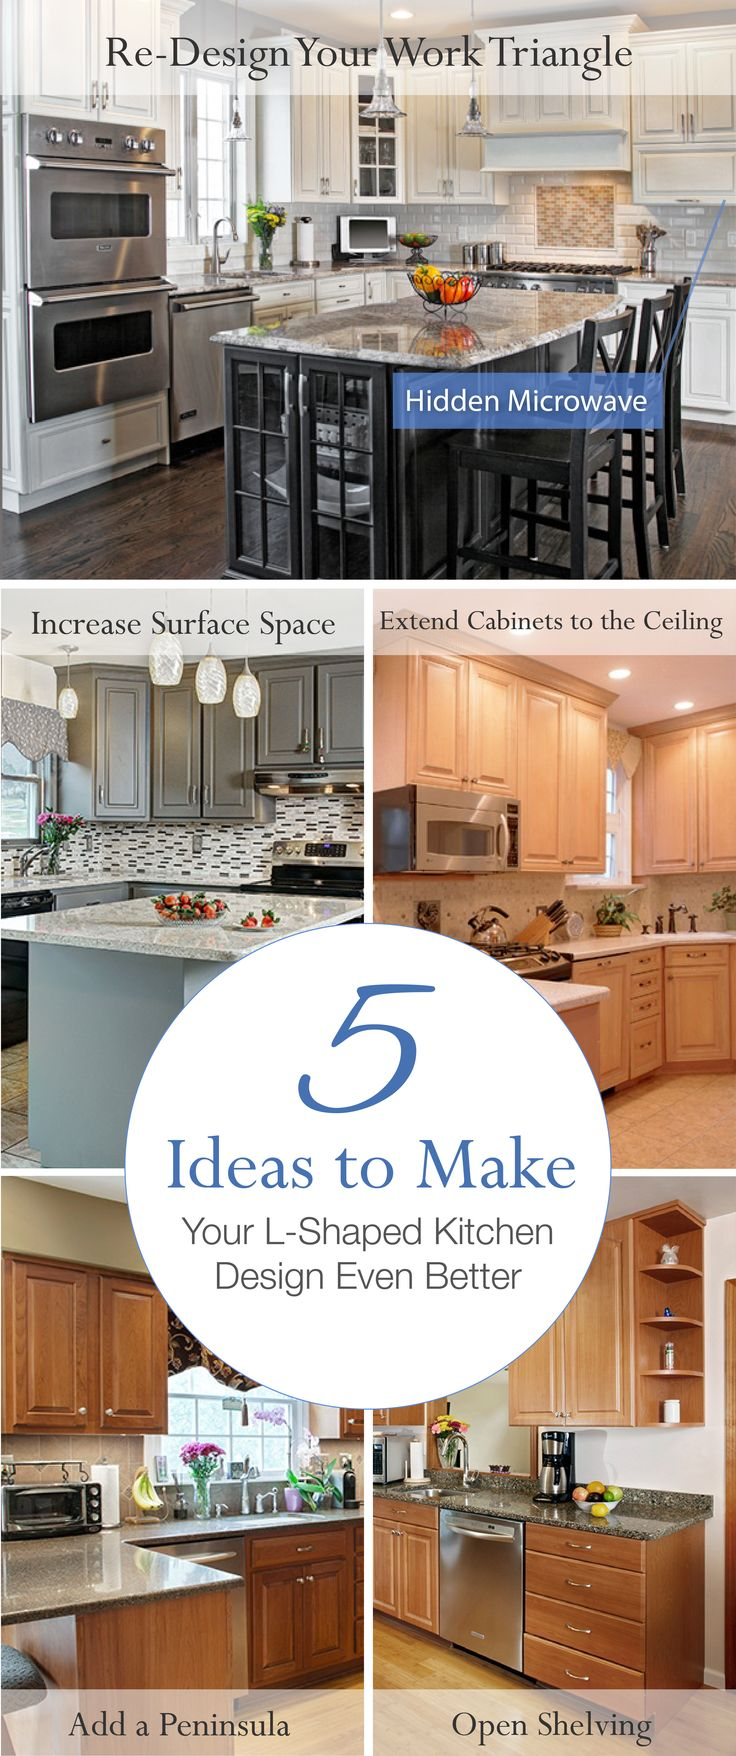 5 ideas to make your existing l shaped kitchen design even better